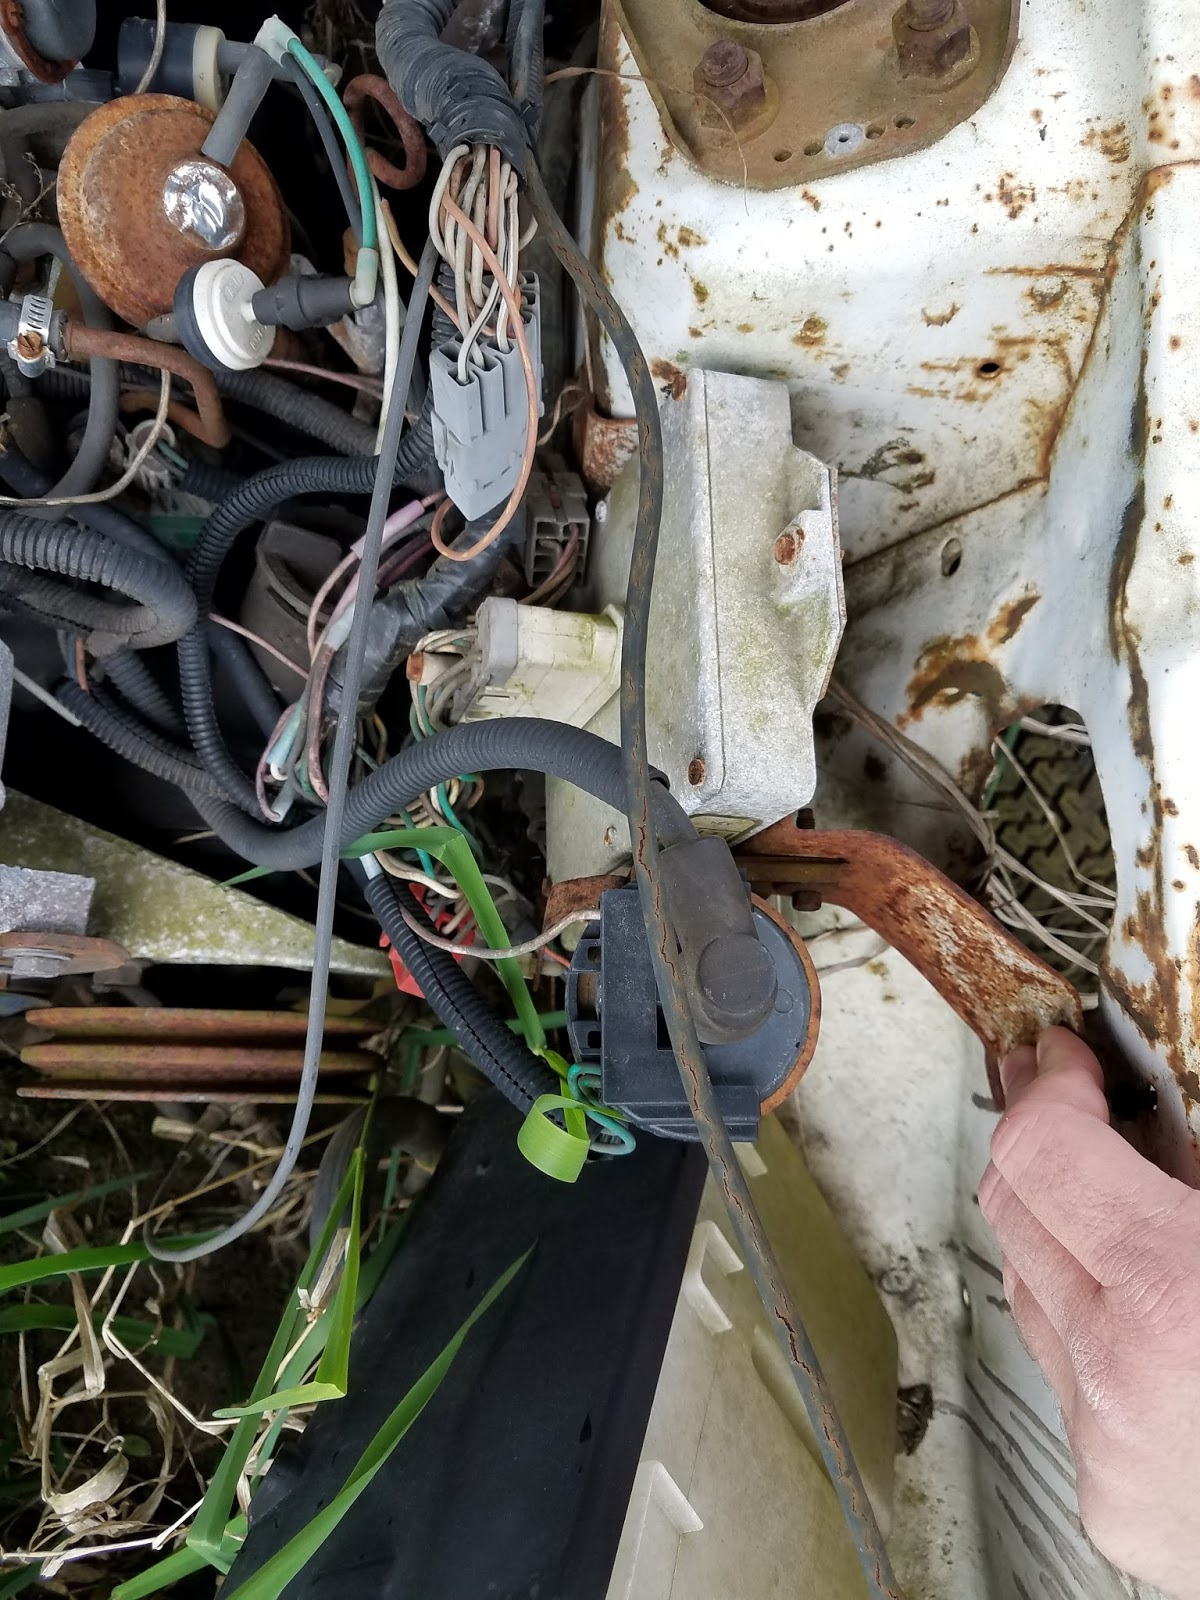 Fox Body Mustang Restoration 1979 Ford Wire Harness Extraction Emission Wiring I Did Not Have The Luxury Of Having Everything There When Bought My Car Actually Was Missing All Emissions Hardware